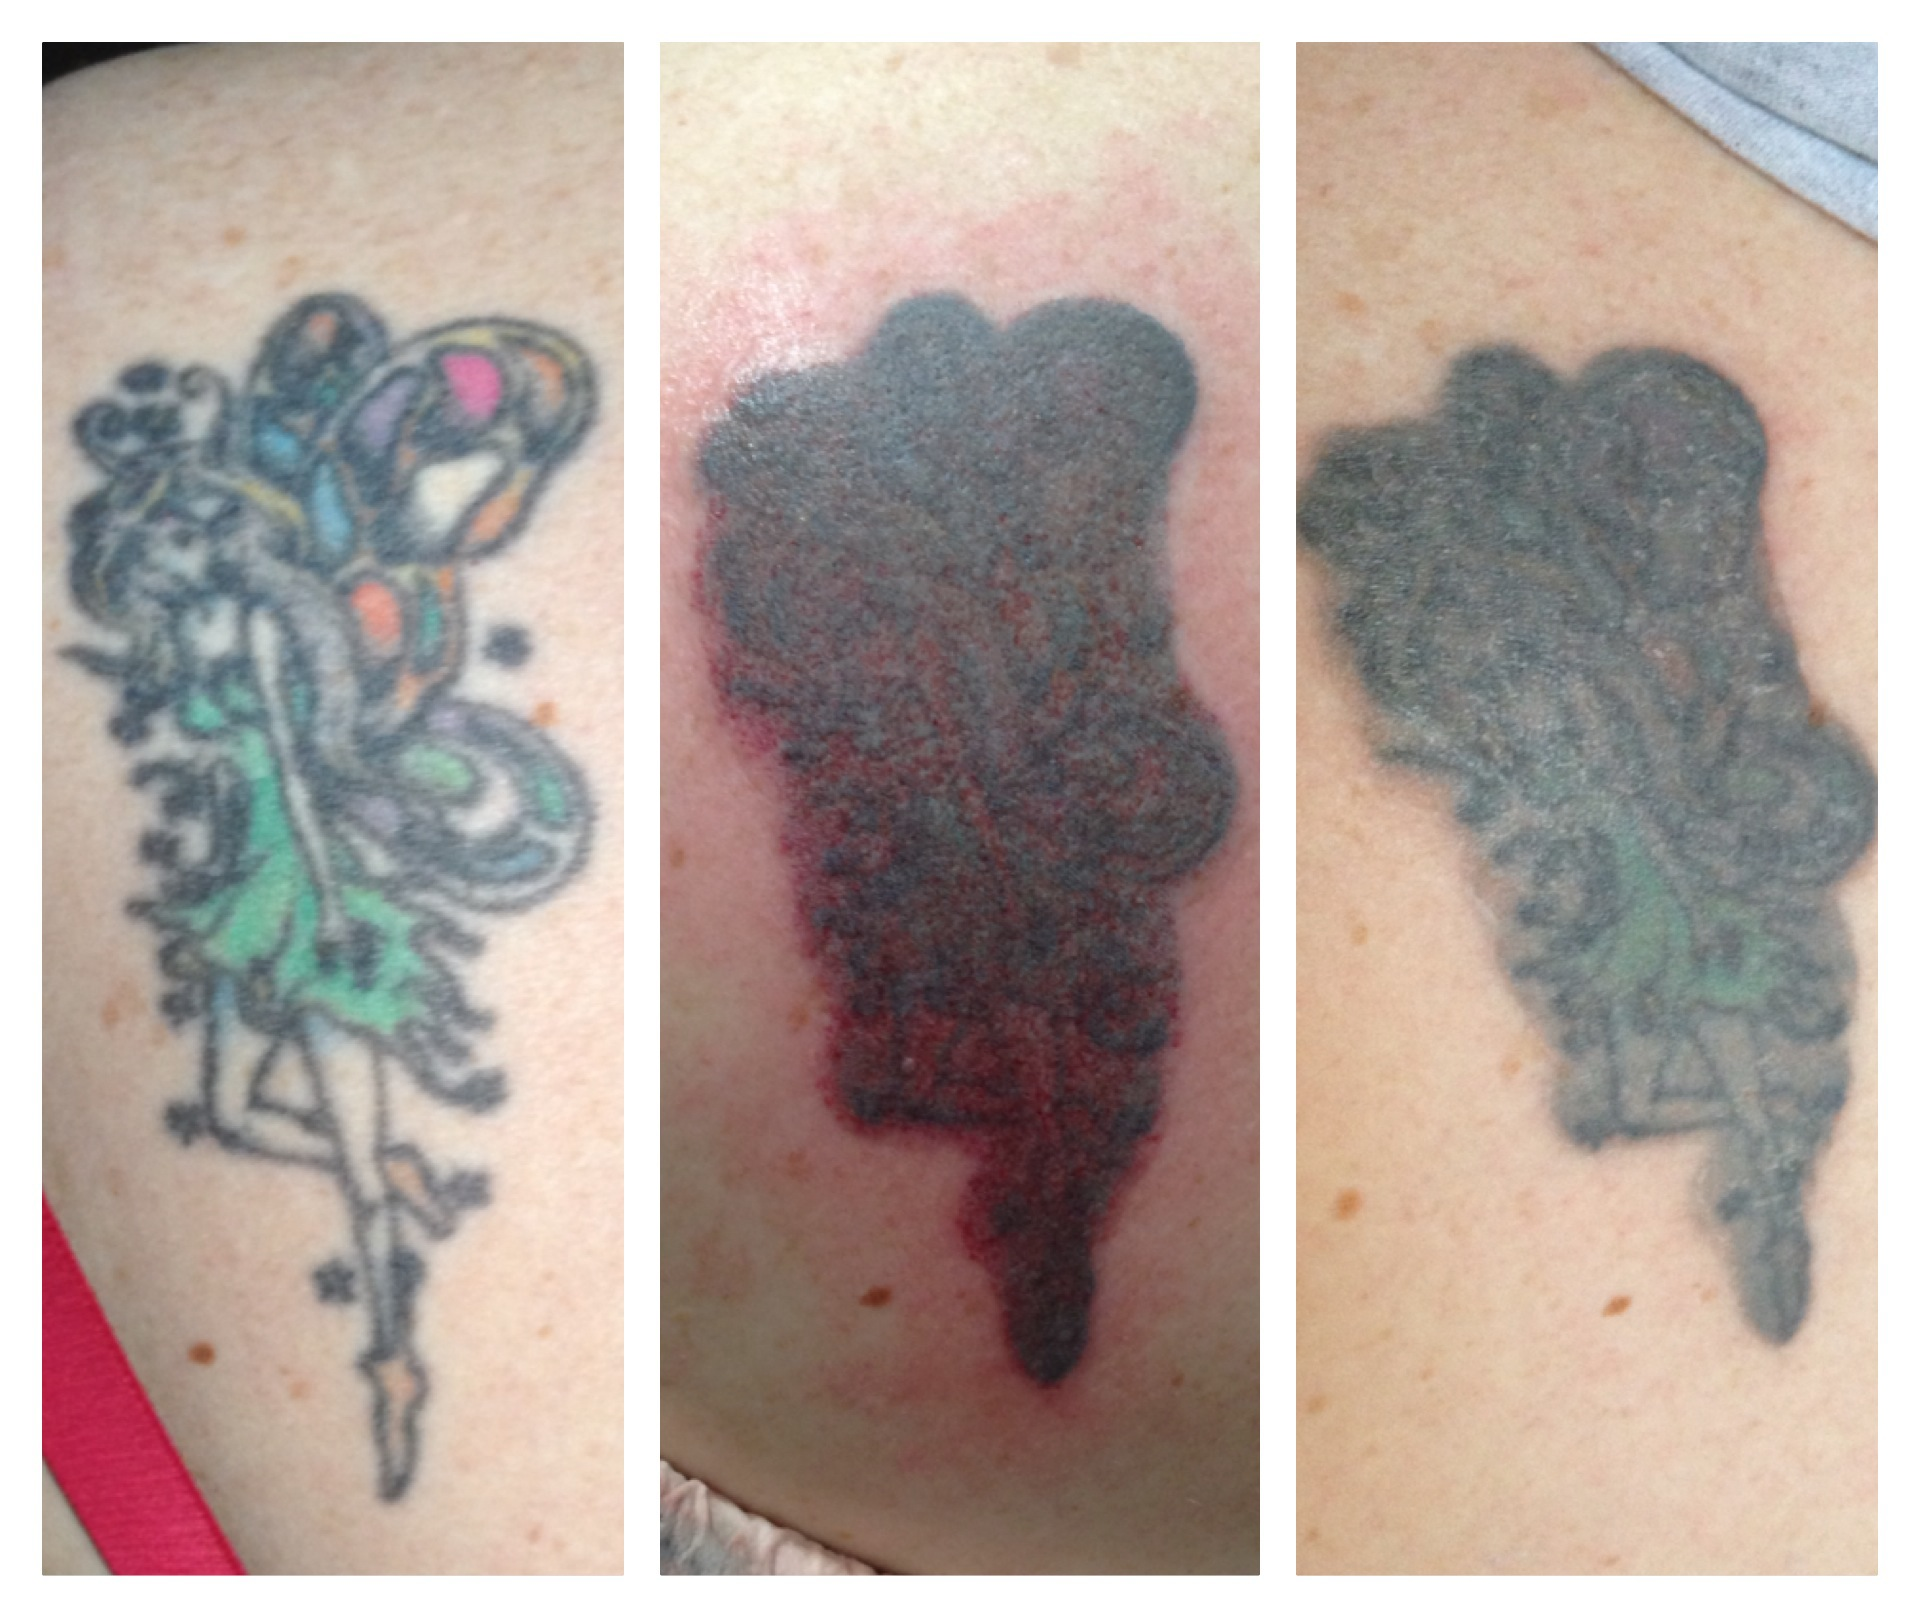 tattoo RMB grey work cover up